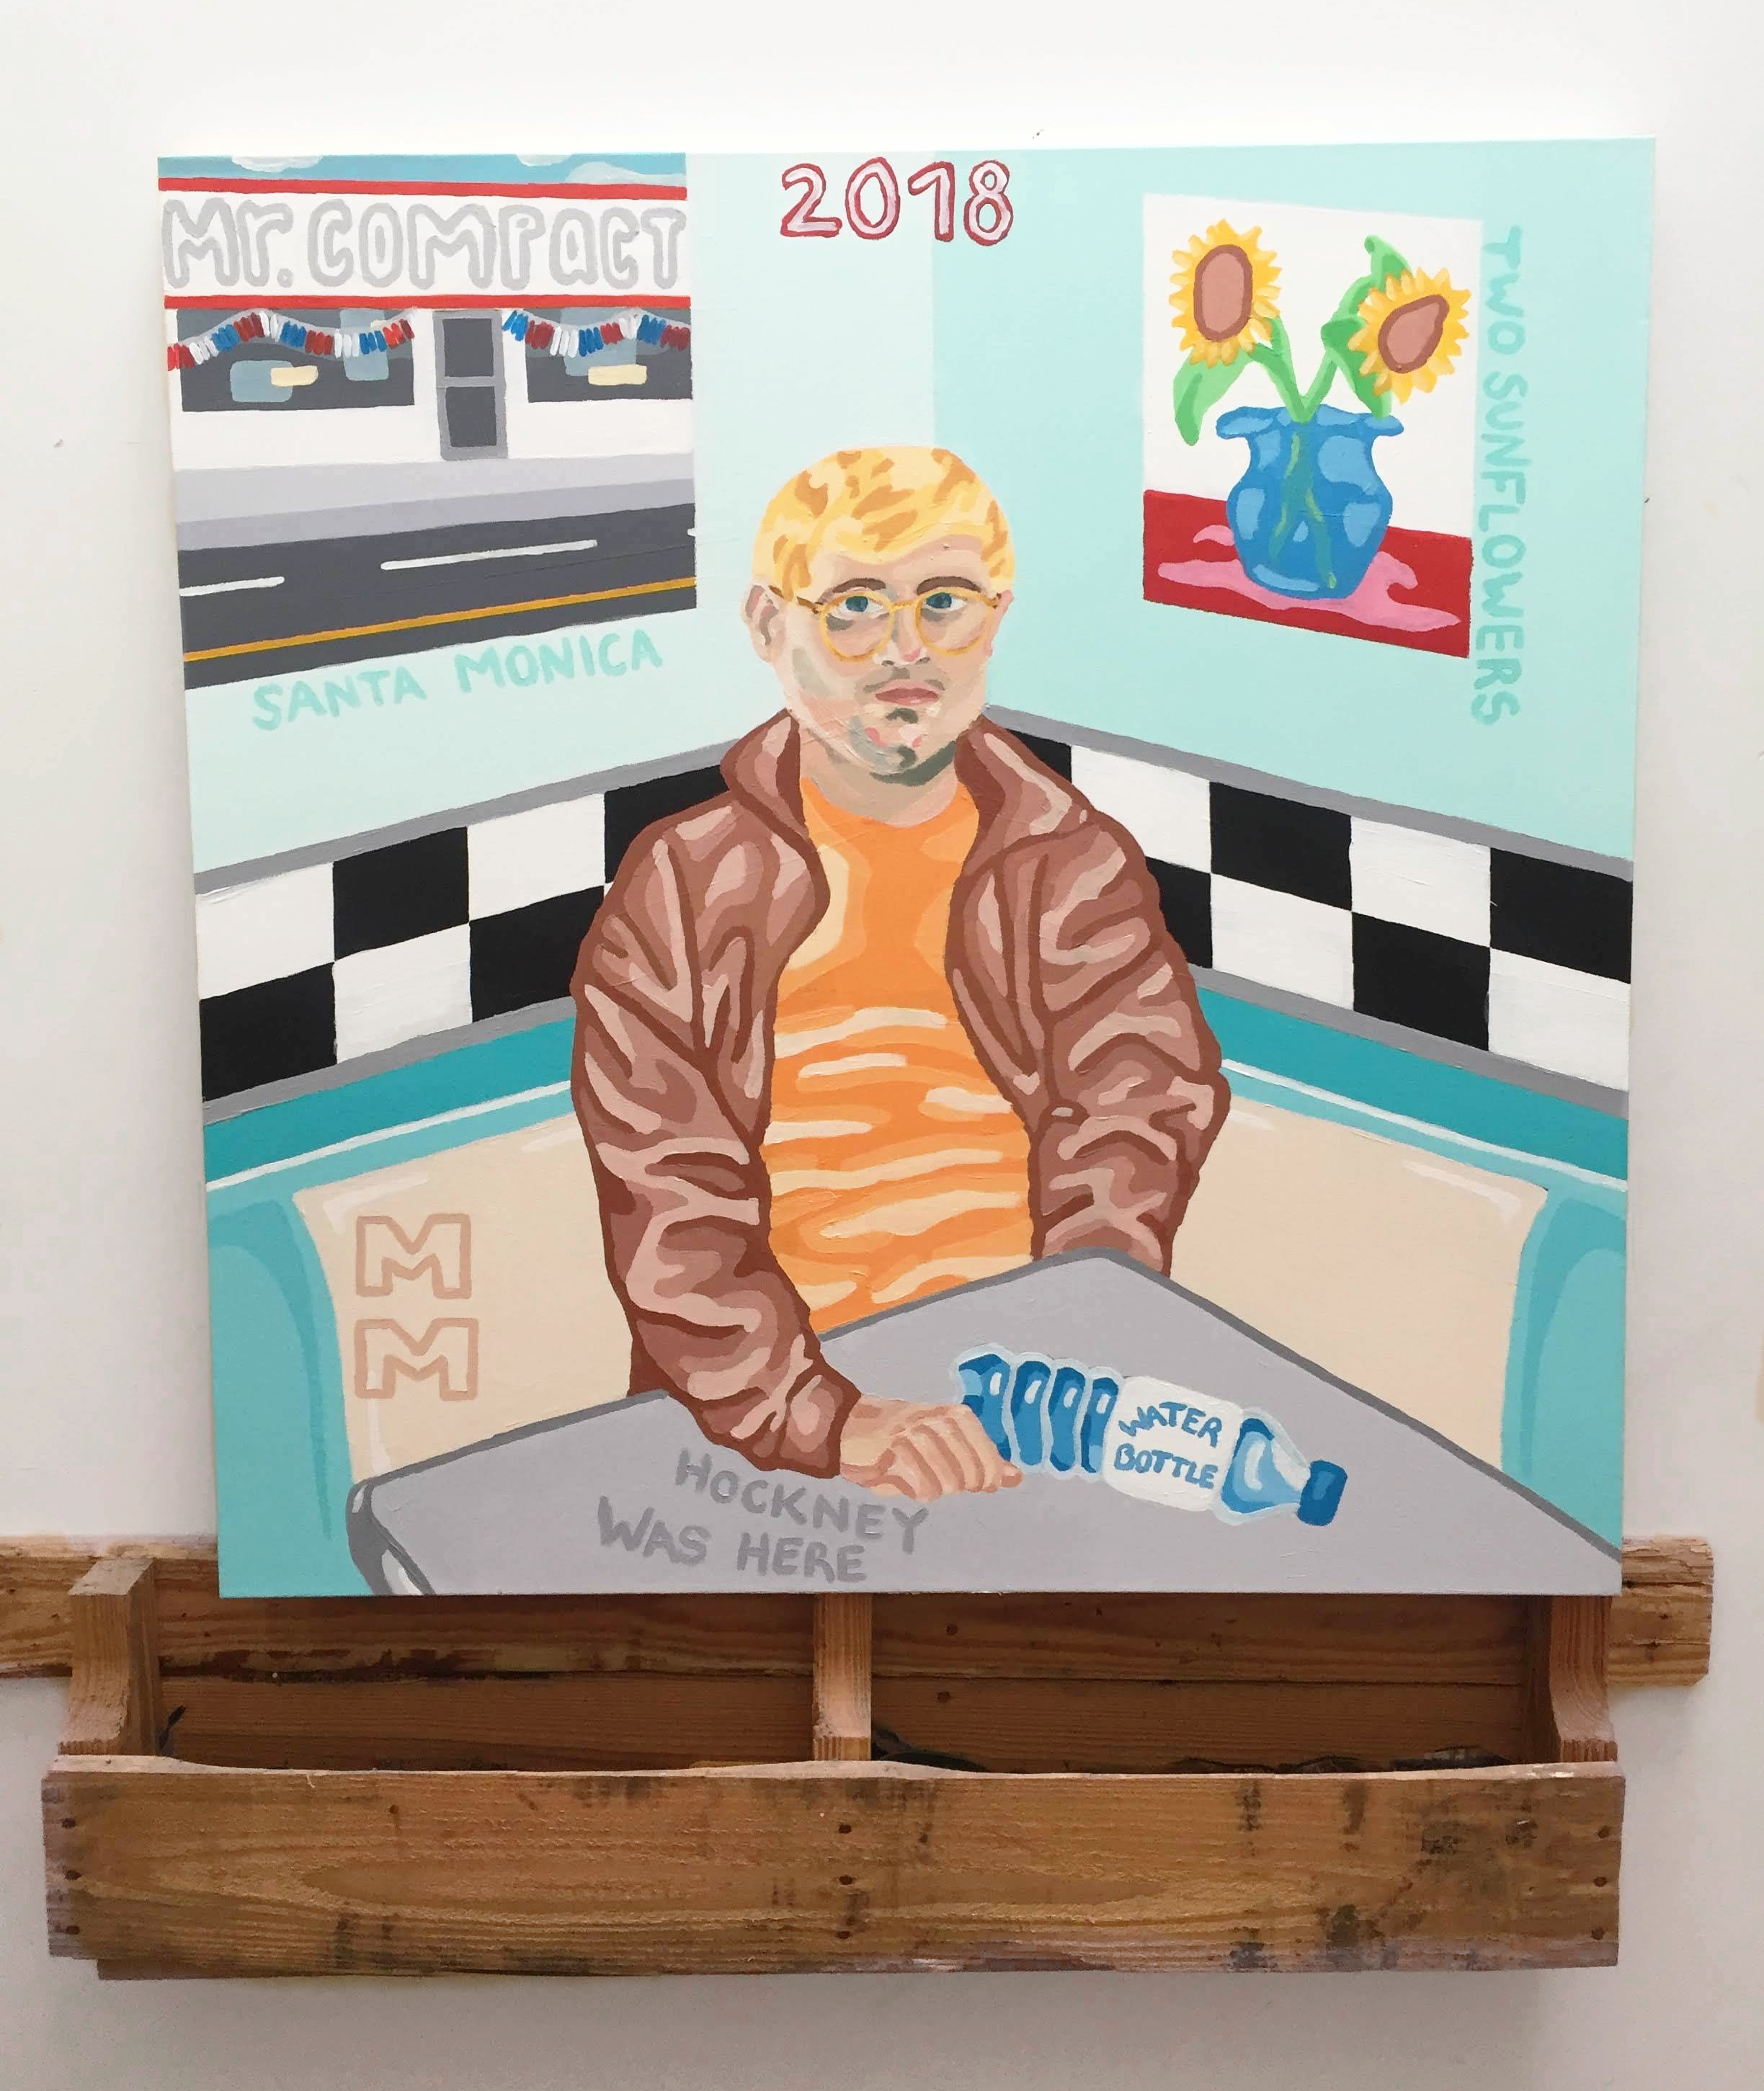 HOCKNEY WAS HERE ACRYLIC ON CANVAS 2018 3.5 X 3.5 FT